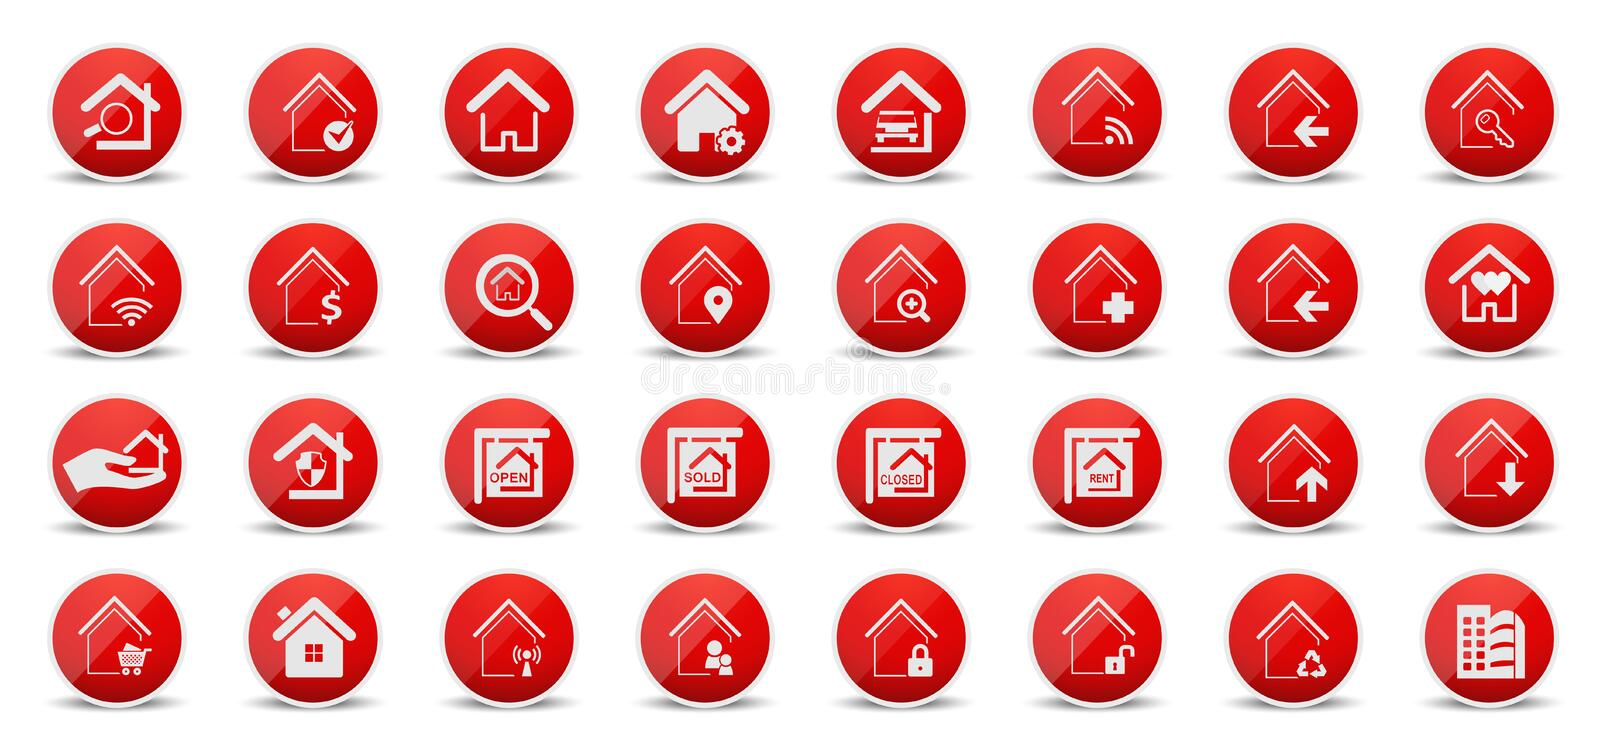 Real state and home web icons royalty free illustration